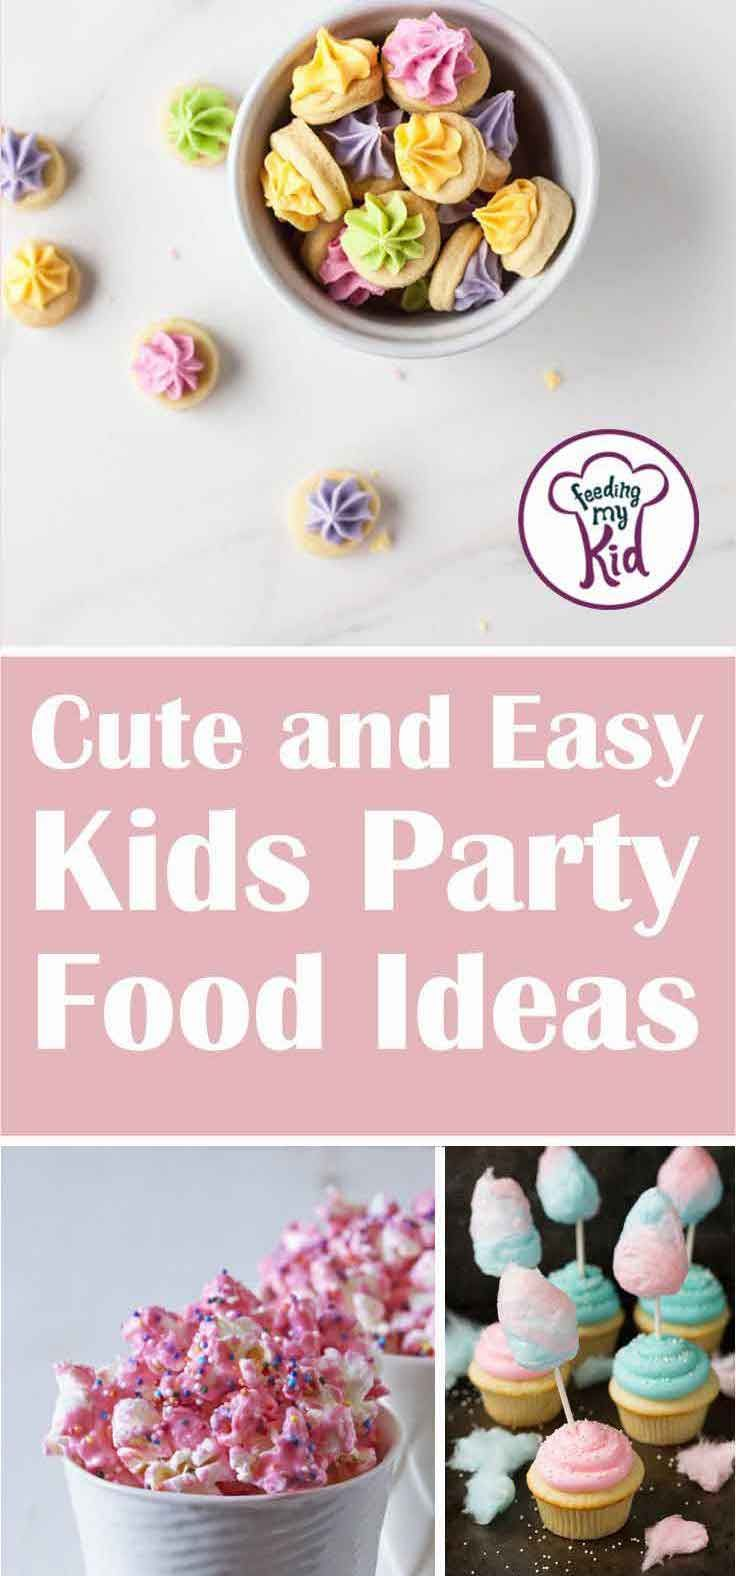 These kids party food ideas are the perfect treats to serve at any party. They're super simple and easy. Your guests will love these!